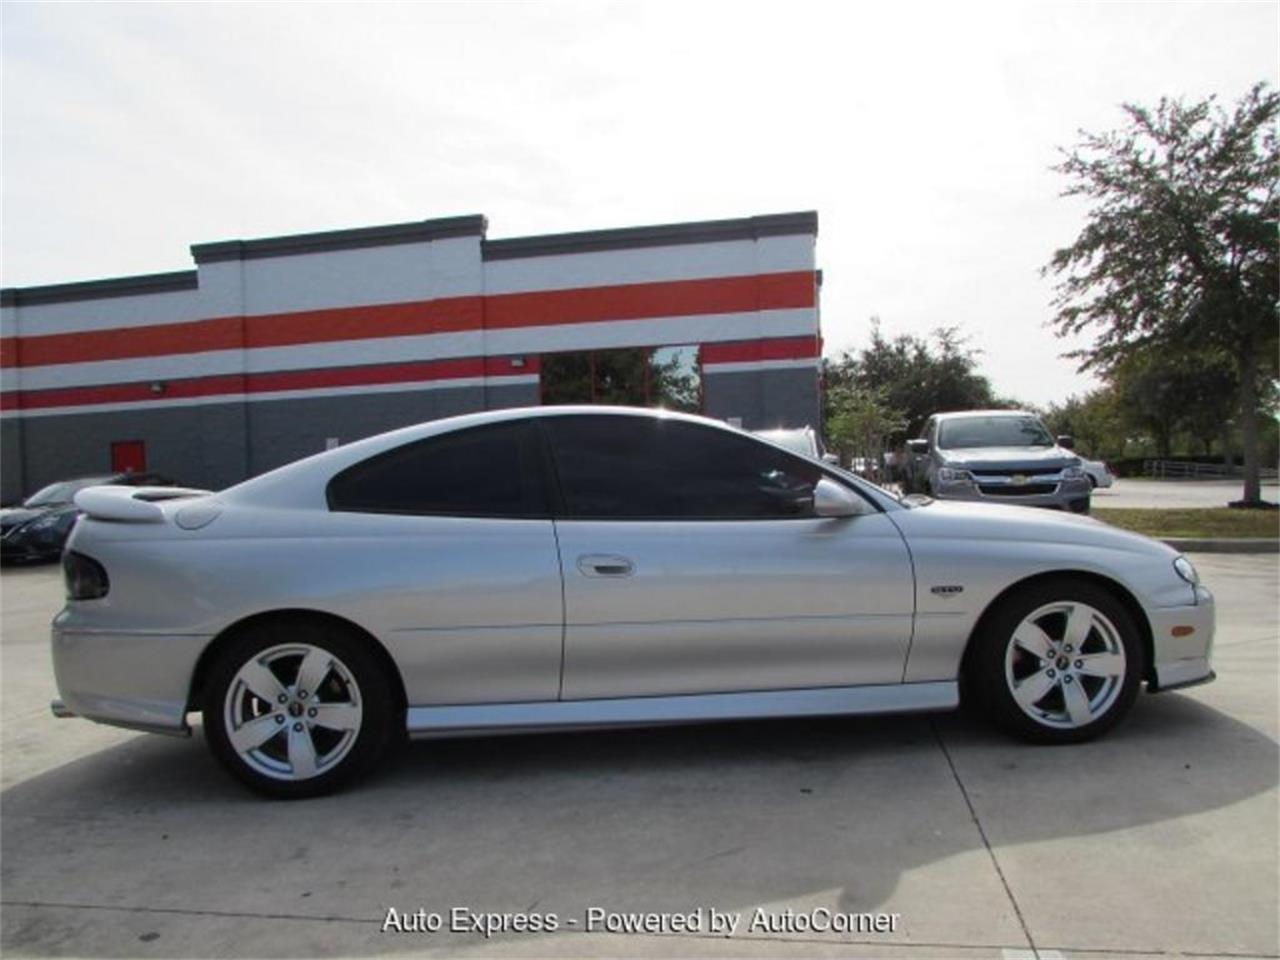 Large Picture of 2005 GTO - $13,999.00 Offered by Auto Express - Q2A5